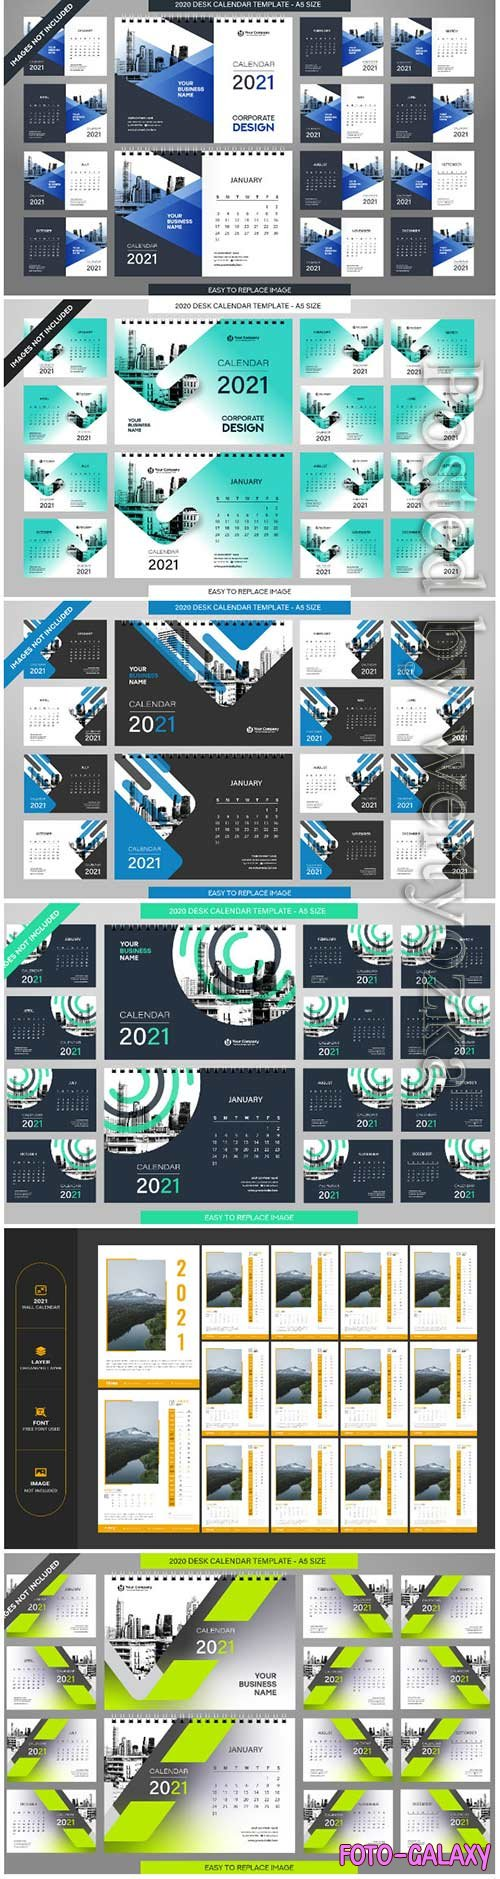 Desk calendar 2021 vector template - 12 months included